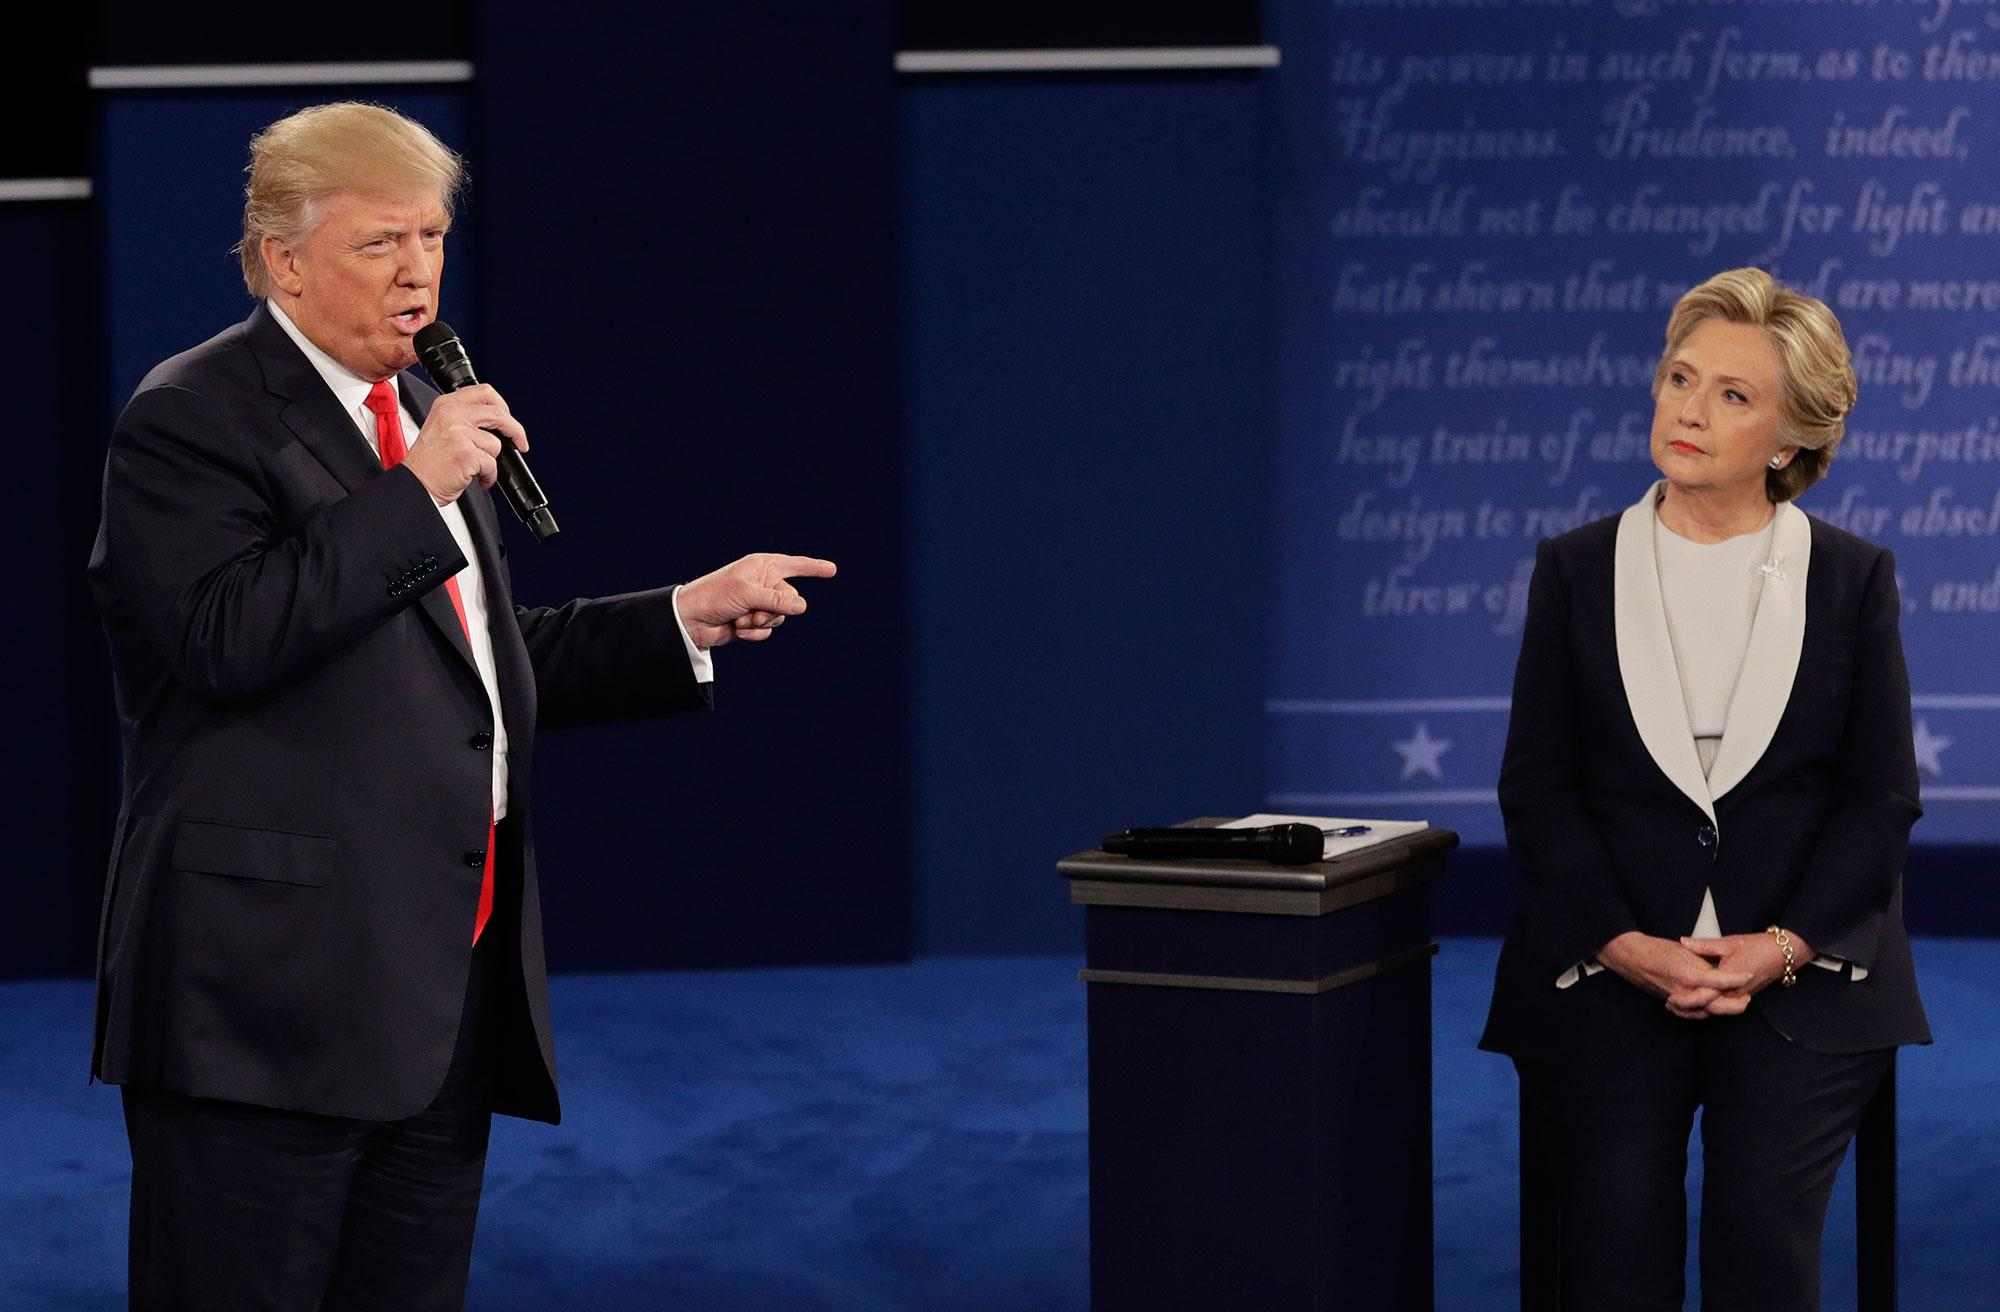 <p>Republican presidential nominee Donald Trump speaks to Democratic presidential nominee Hillary Clinton during the second presidential debate at Washington University in St. Louis, Mo., Sunday, Oct. 9, 2016. (Photo: John Locher/AP) </p>